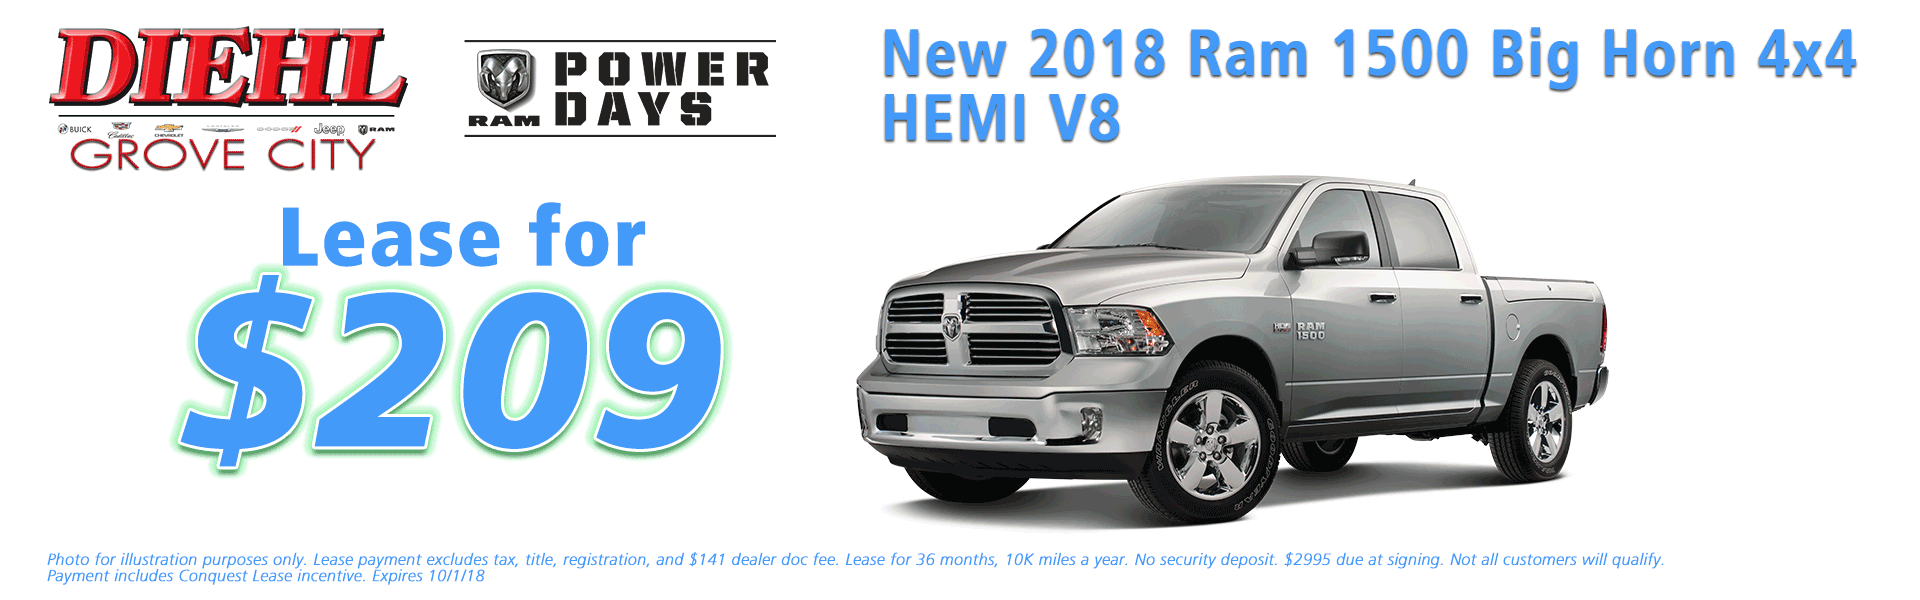 Diehl of Grove City Chrysler Jeep Dodge Ram Chevrolet Buick Cadillac Grove City, PA sales service parts collision repair NEW 2018 RAM 1500 BIG HORN CREW CAB 4X4 5'7